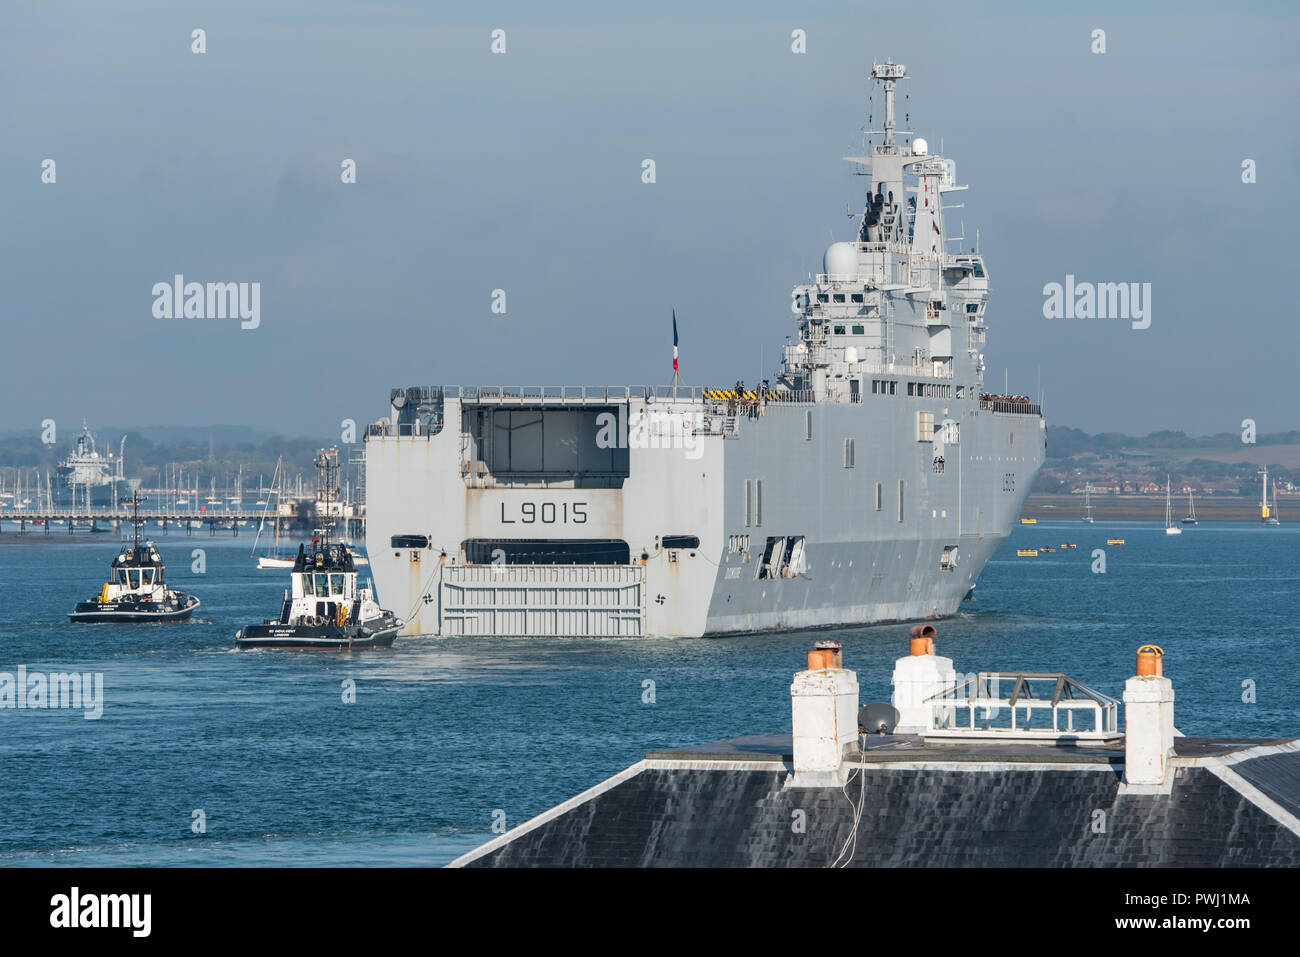 The French Navy 'Mistral' class amphibious assault ship FS Dixmude arrives for a short visit to Portsmouth, UK to load troops & equipment on 16/10/18. Stock Photo